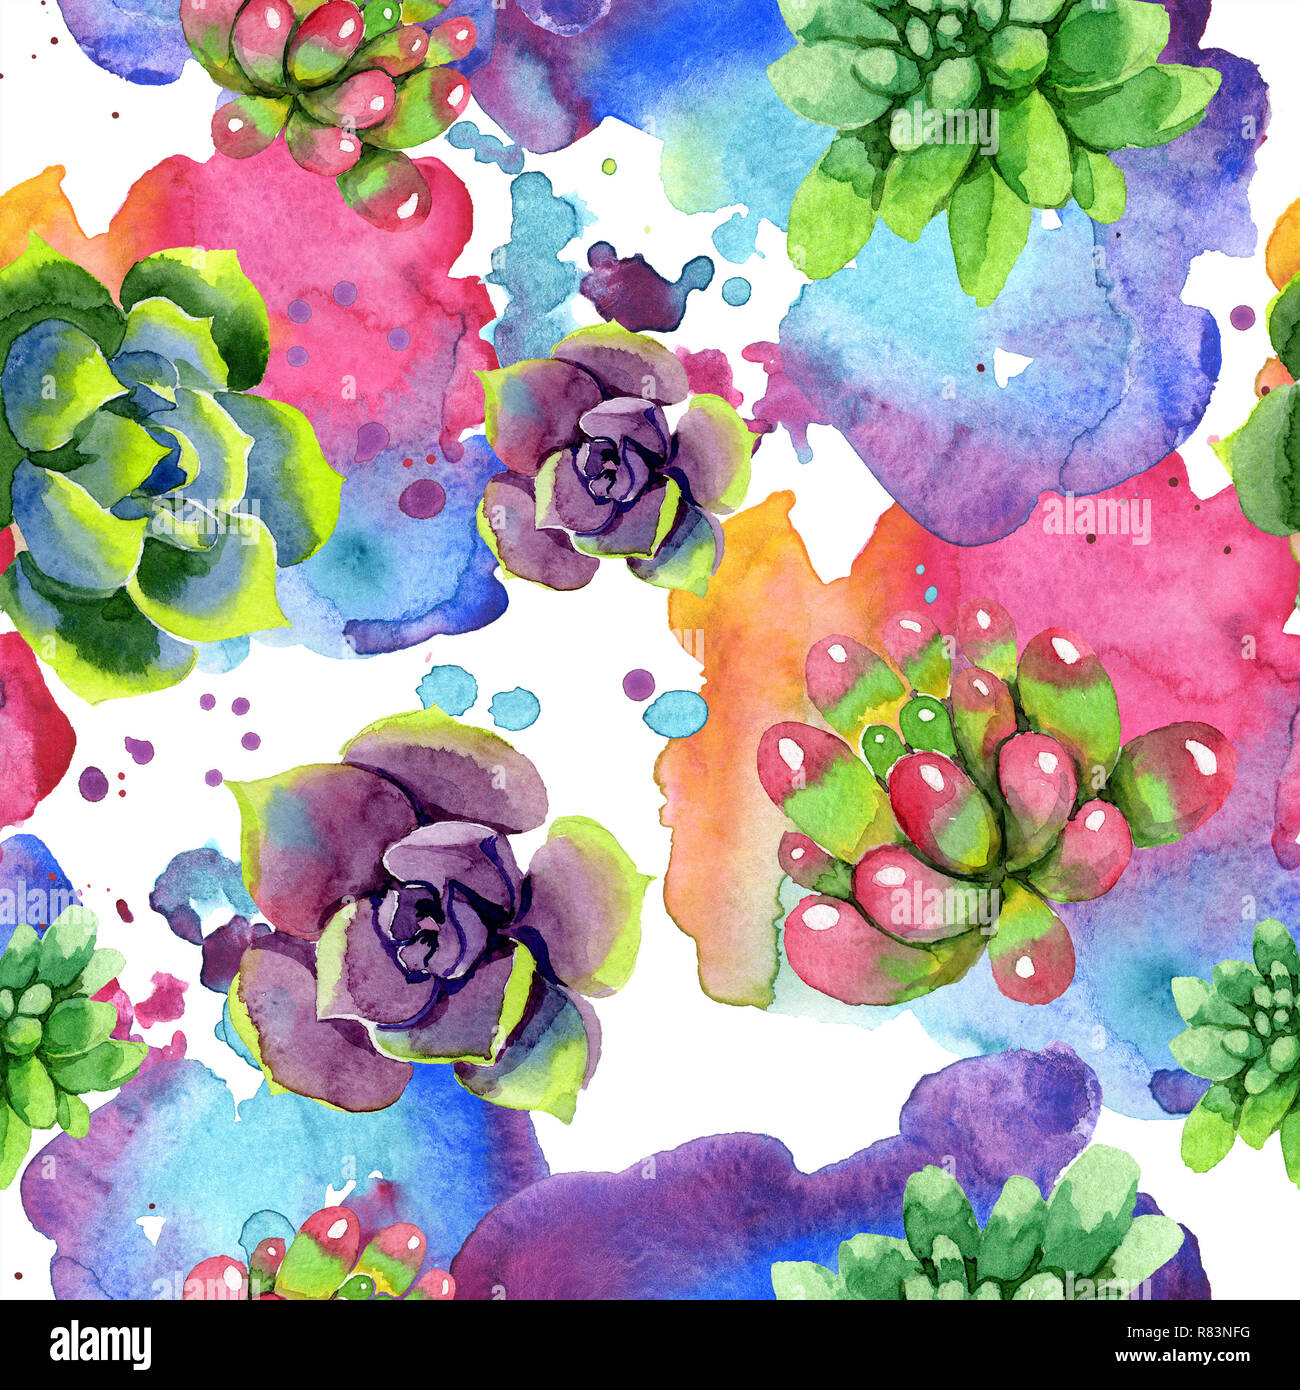 Amazing Succulent Floral Botanical Flower Watercolor Background Illustration Set Seamless Background Pattern Fabric Wallpaper Print Texture Stock Photo Alamy